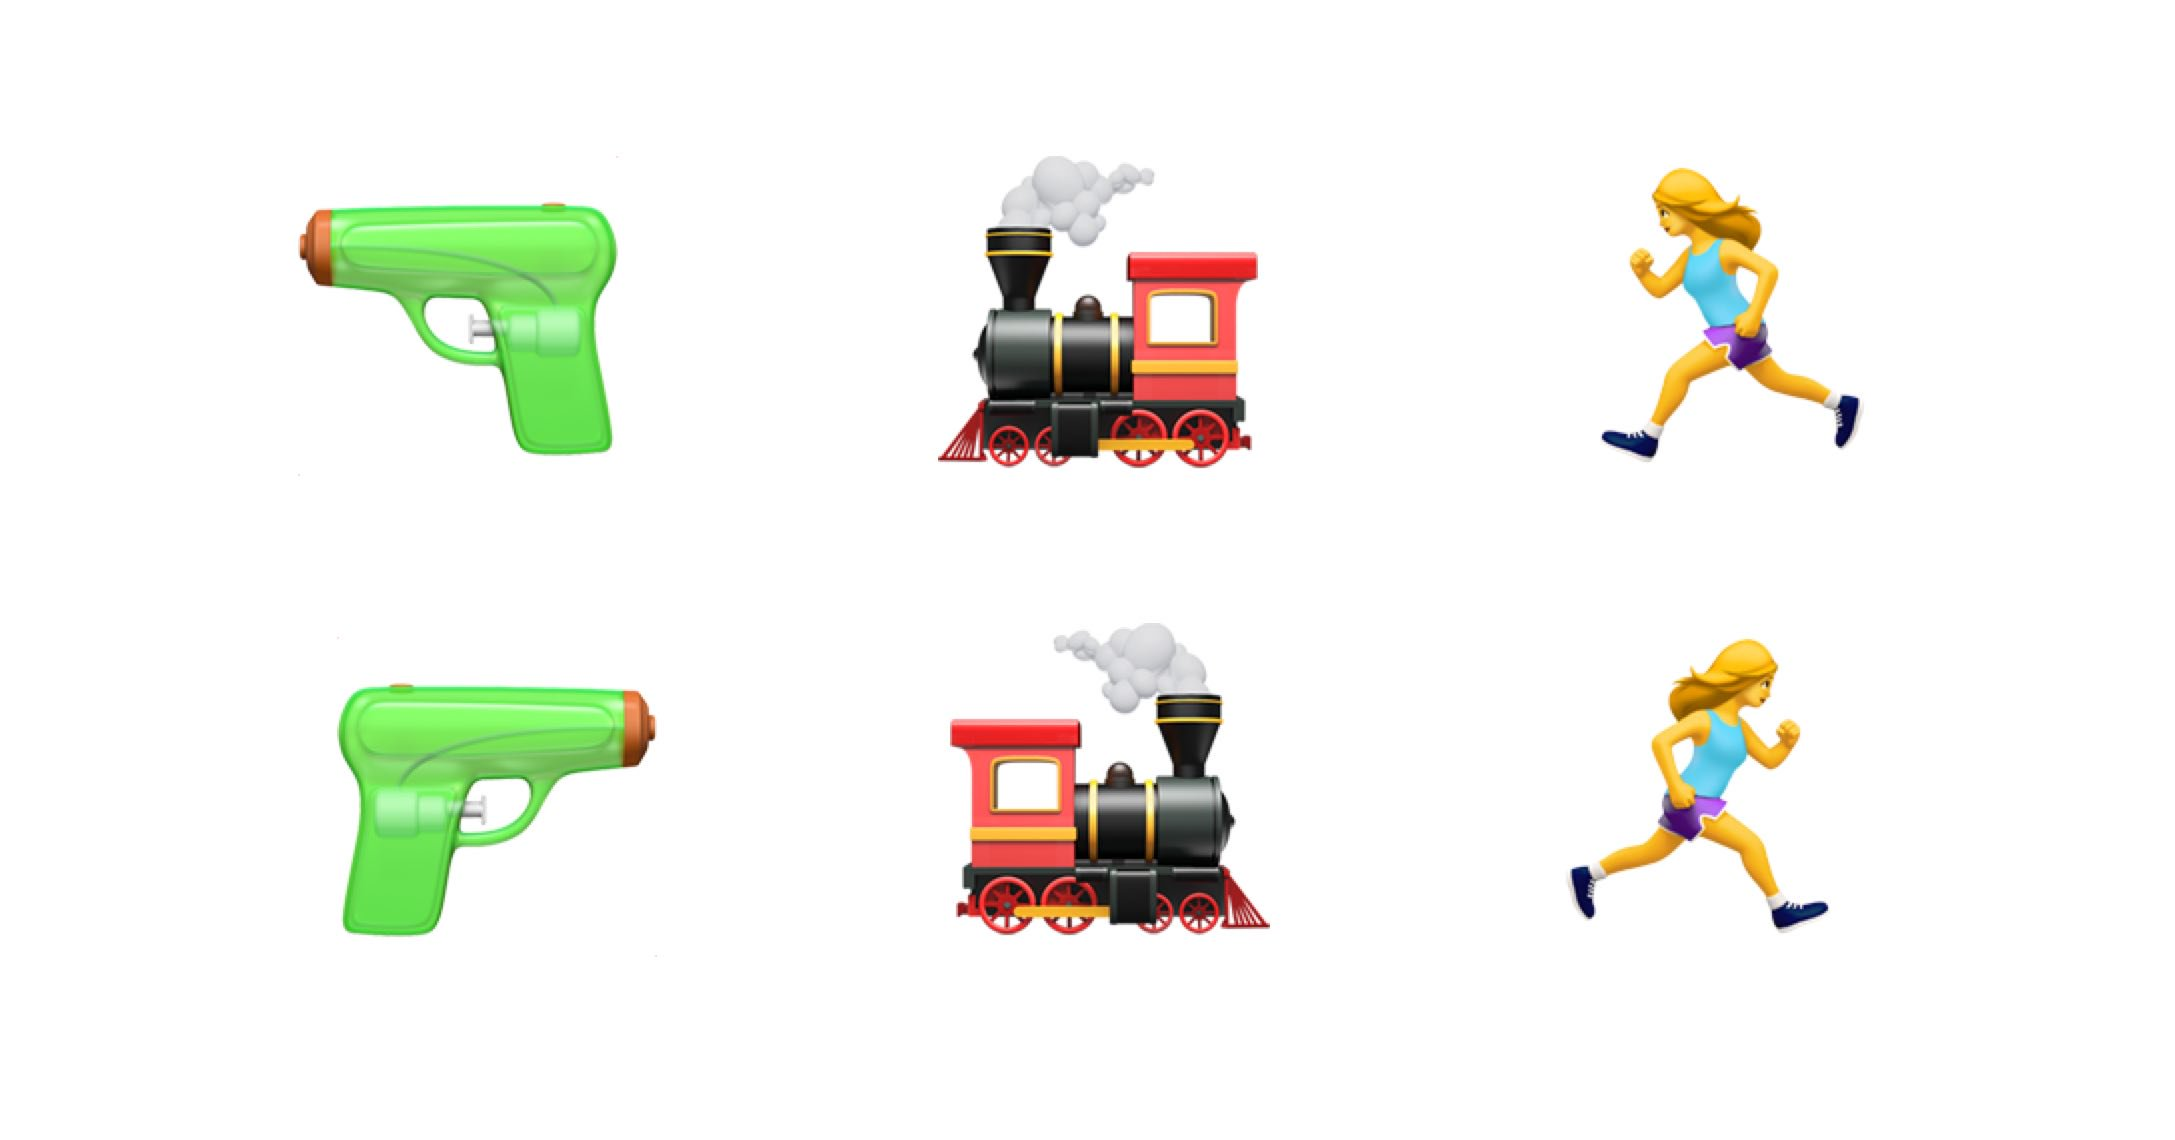 Reversible emojis might be coming to our devices soon